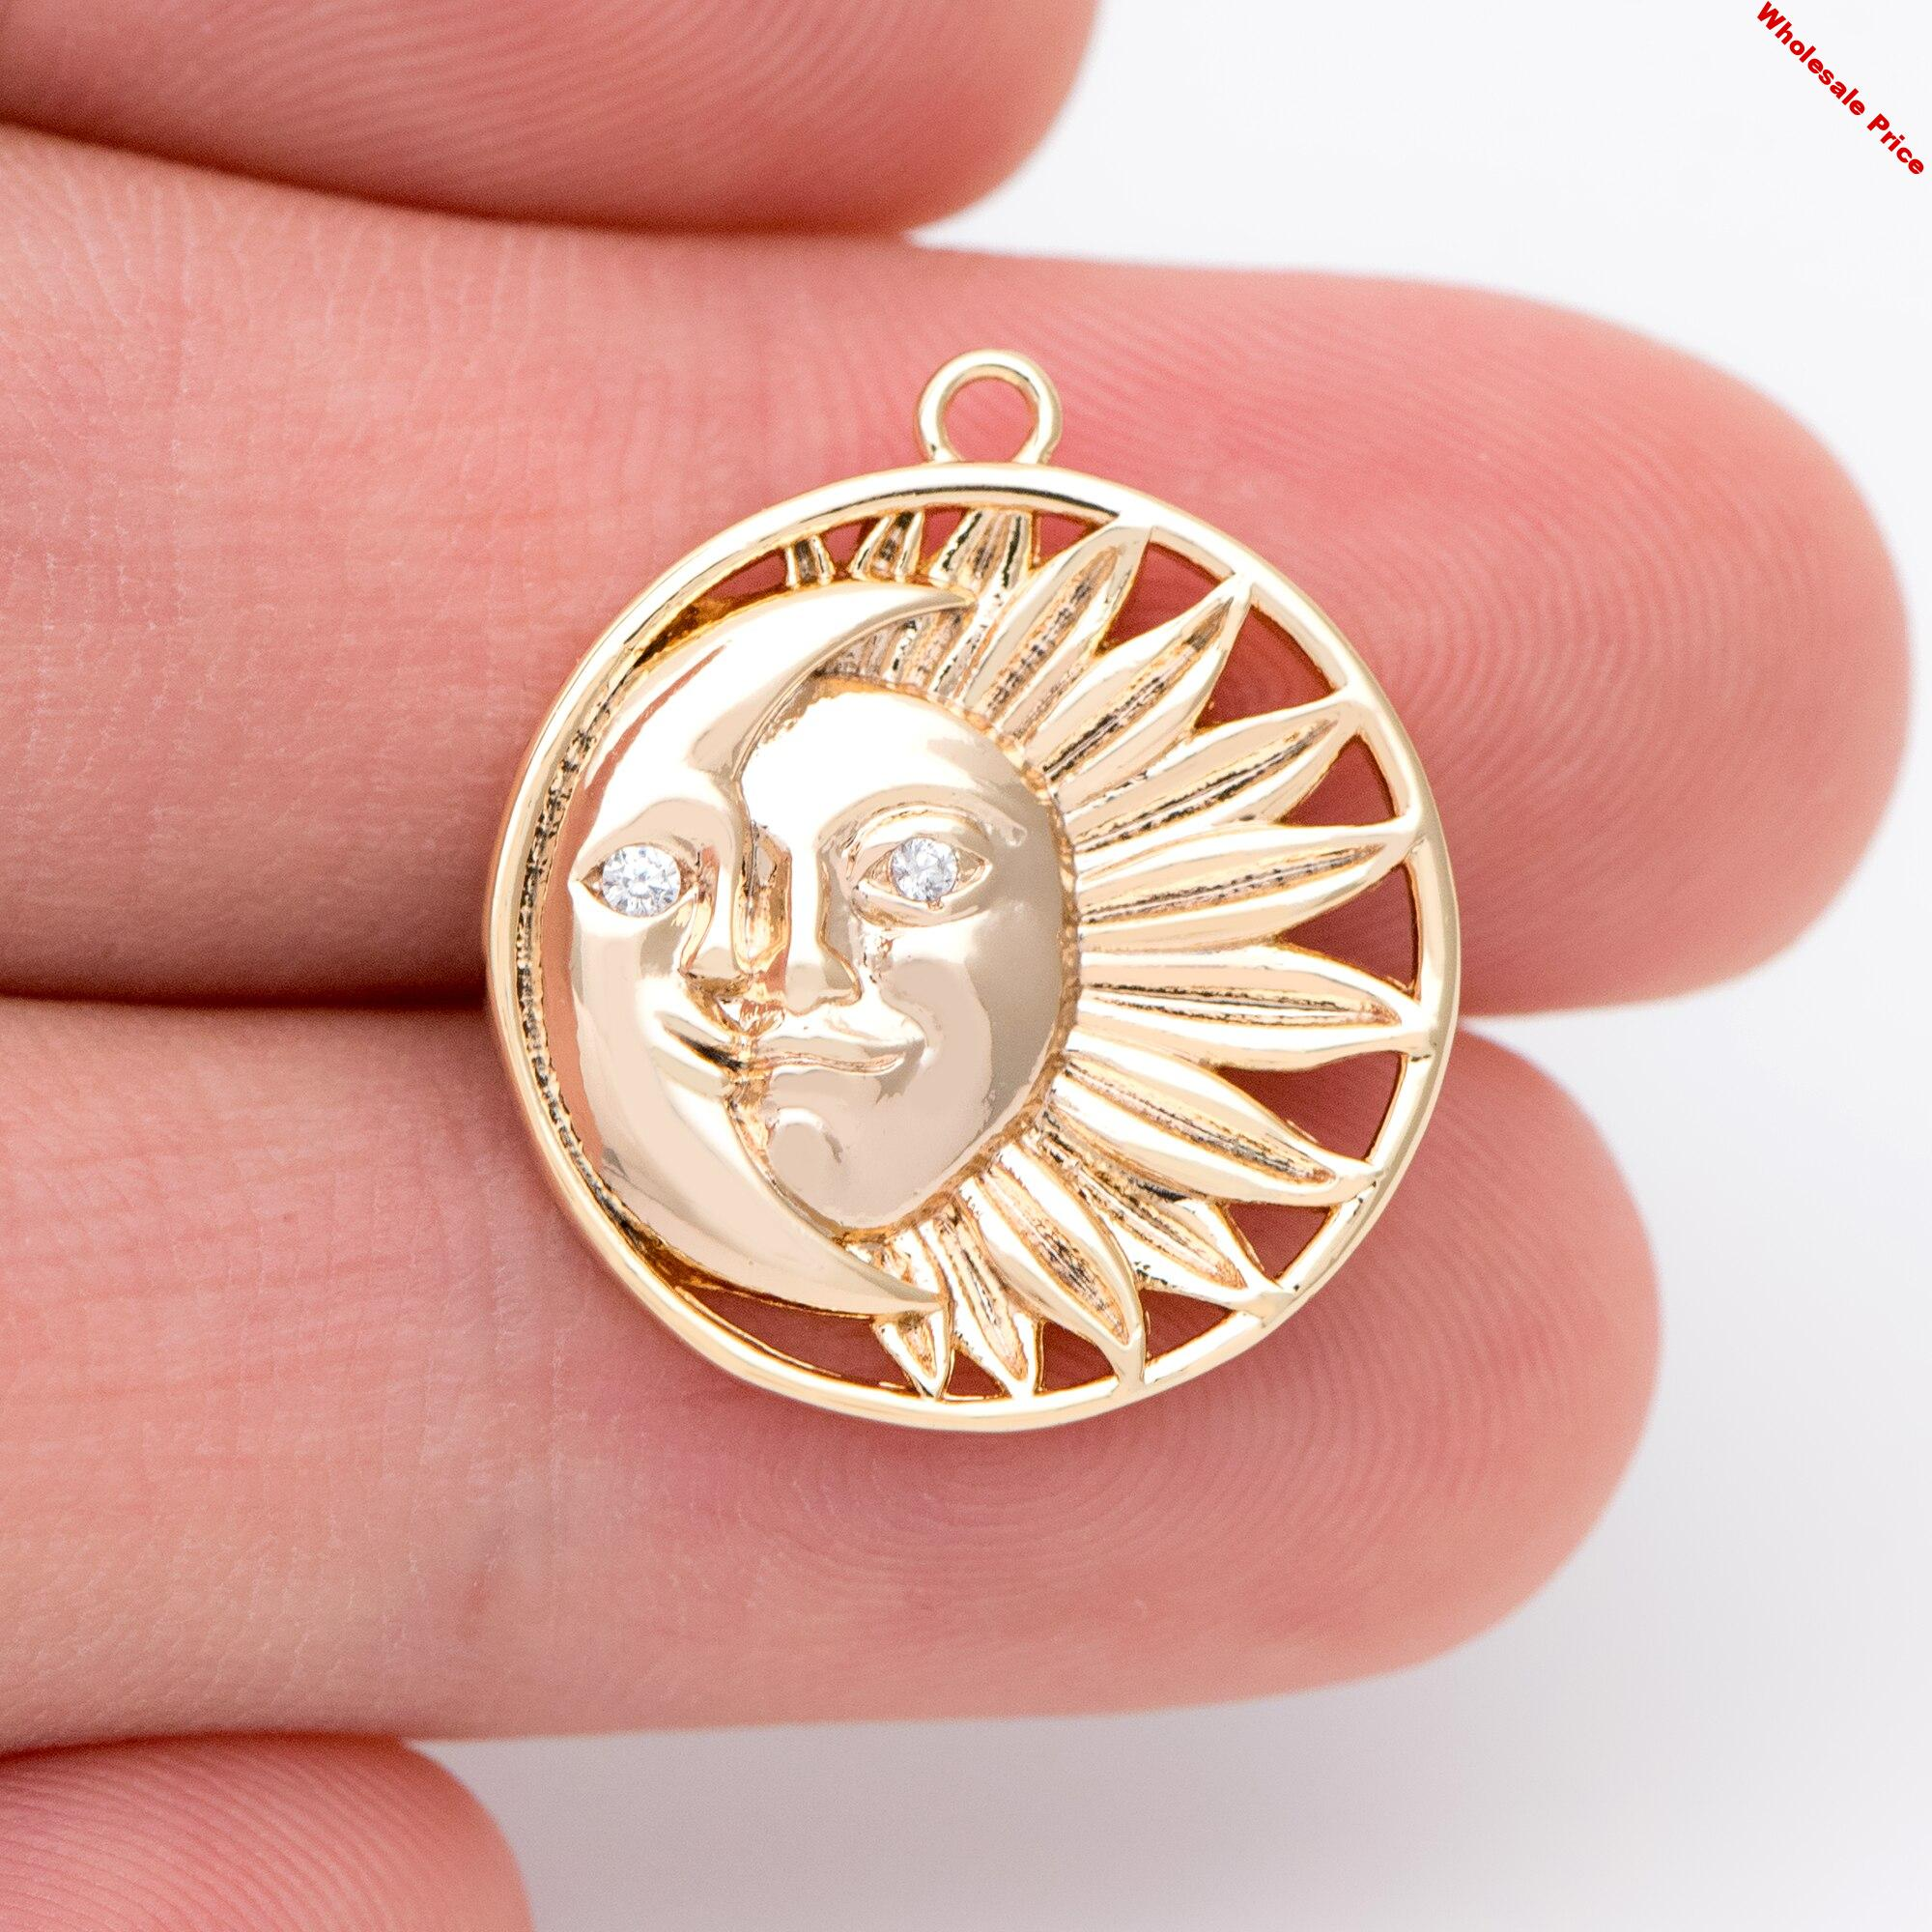 10pcs Sun and Moon Charms 21x19mm